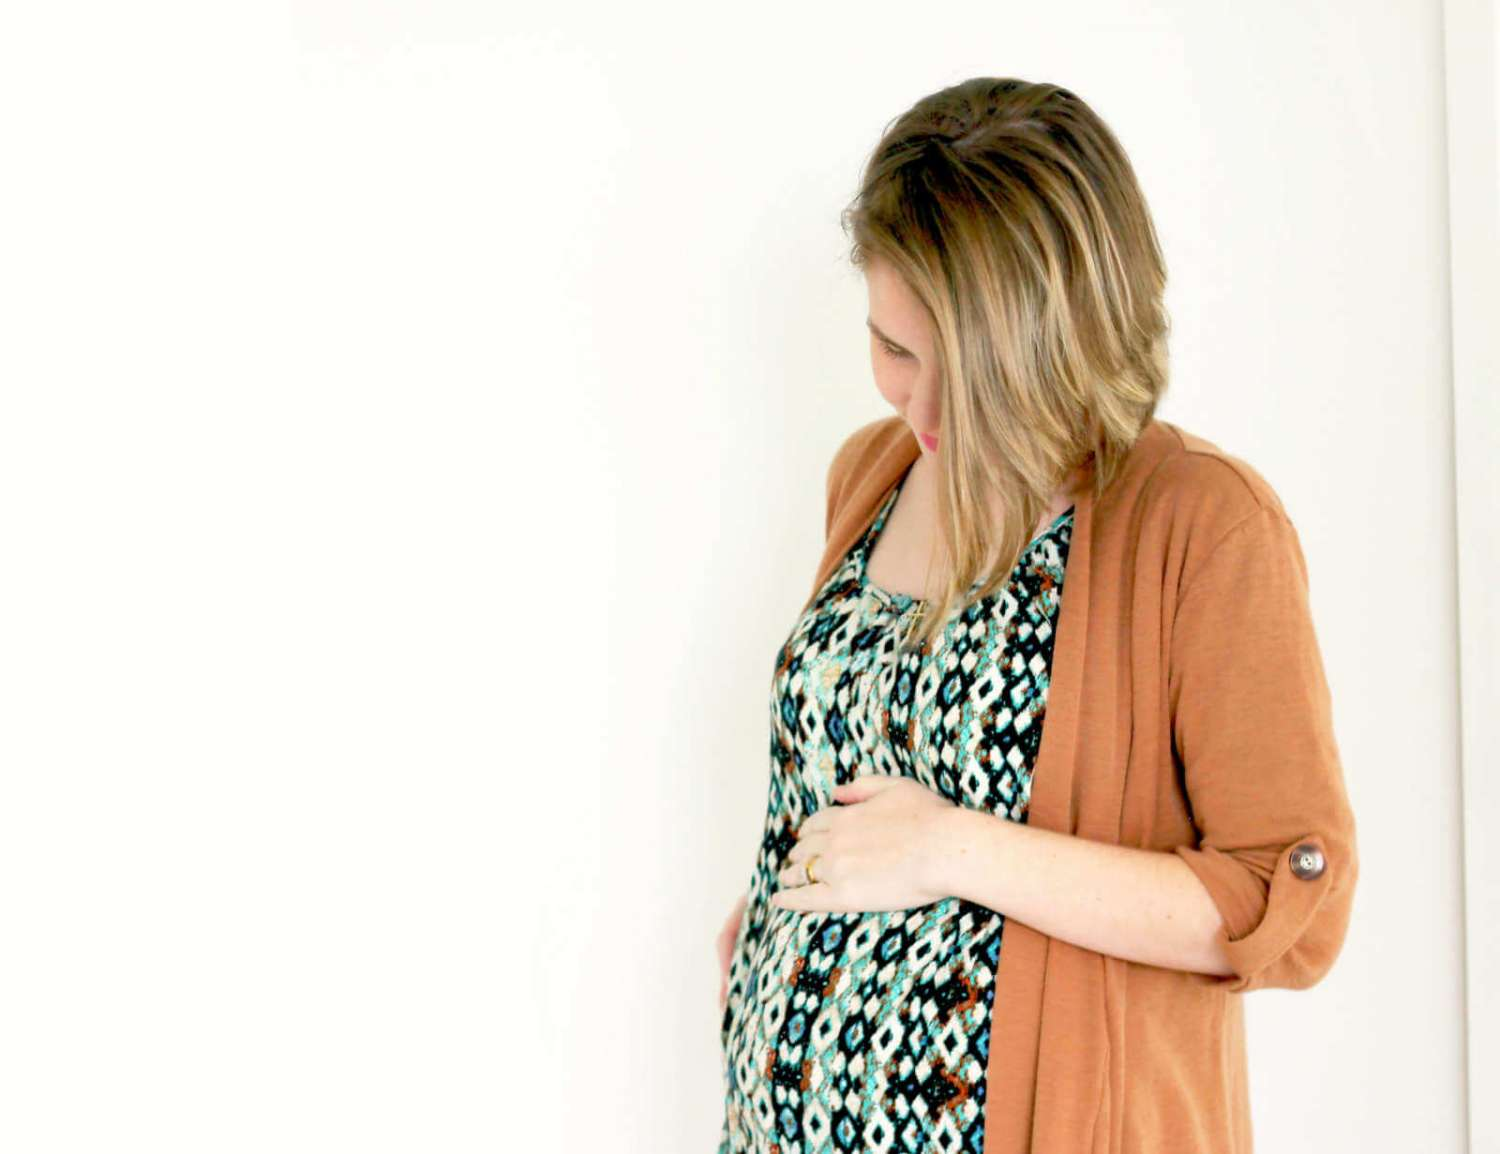 24 Week Pregnancy Update: The Importance of a Support System